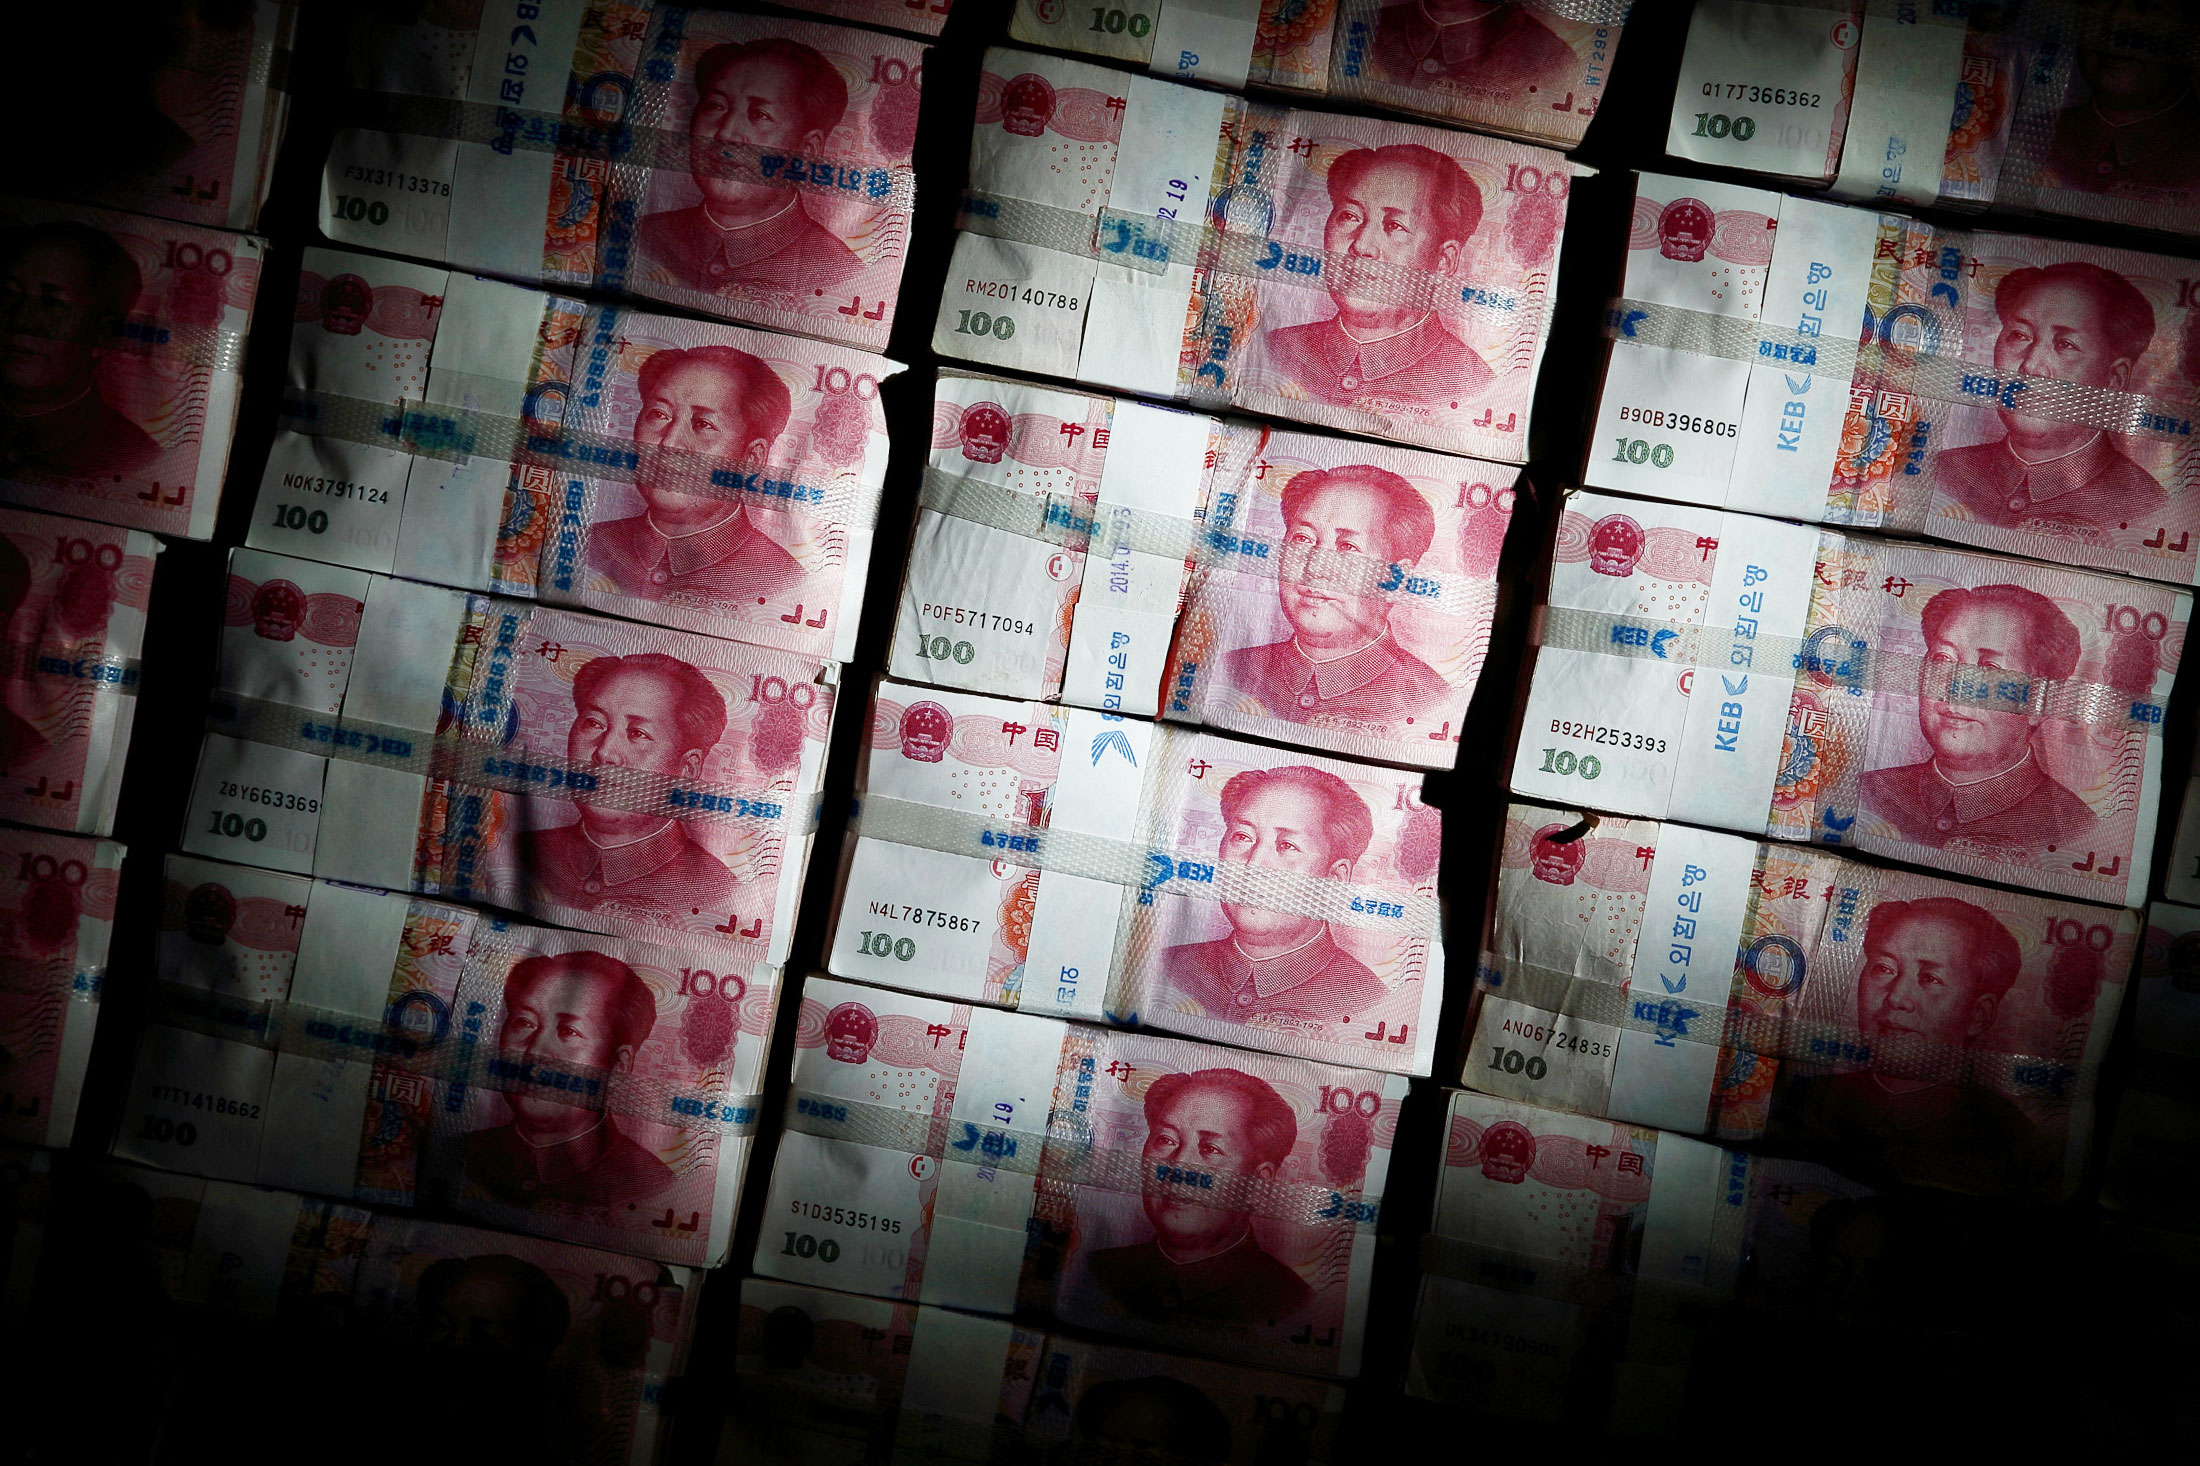 China Working Hard to Stabilize Yuan Against Basket, PBOC Says - Bloomberg